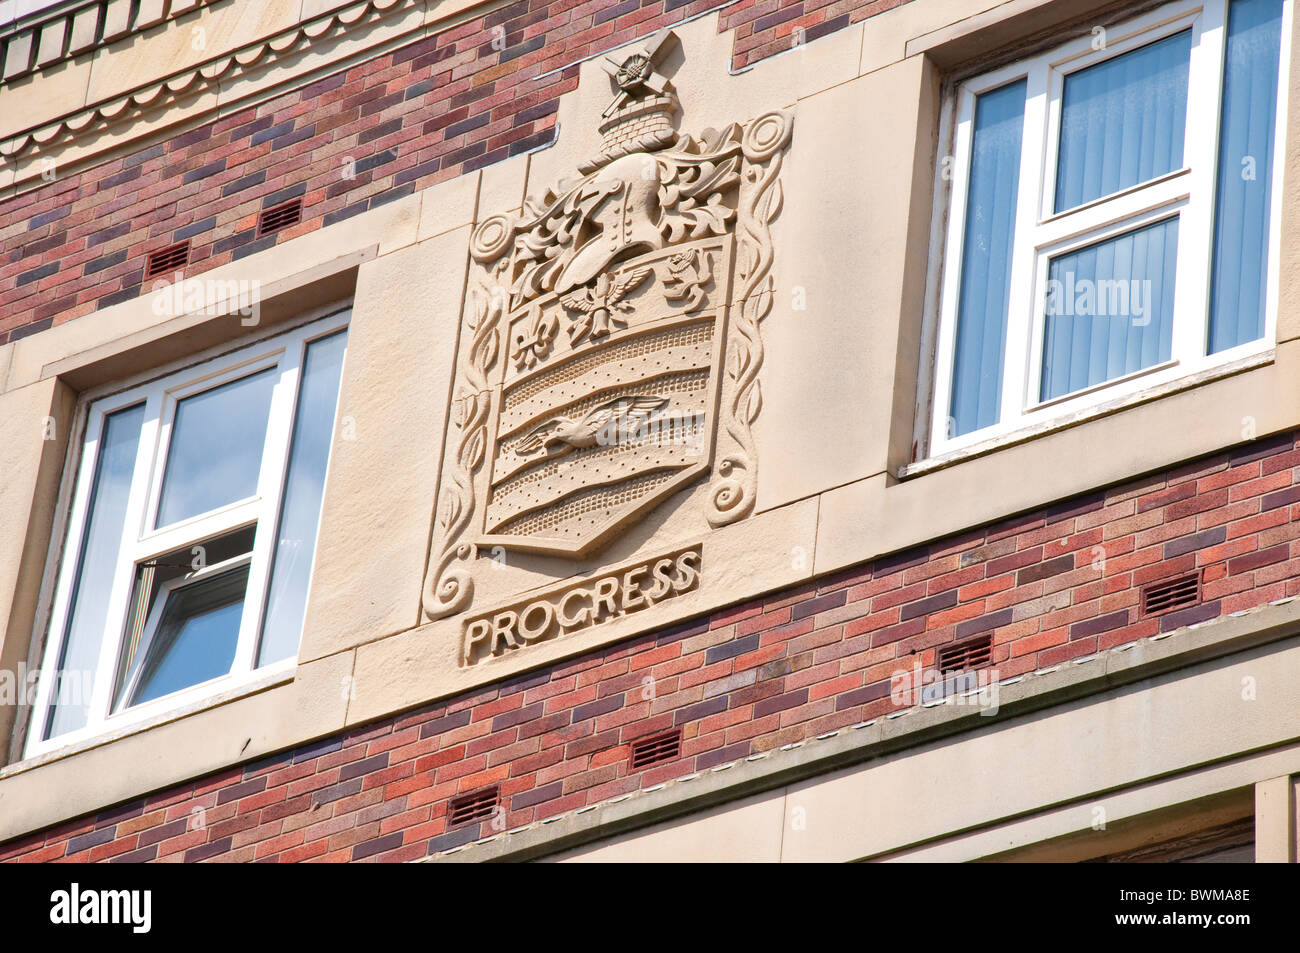 Carving on Art Deco building in Blackpool on the coast of Lancashire in Northern England - Stock Image